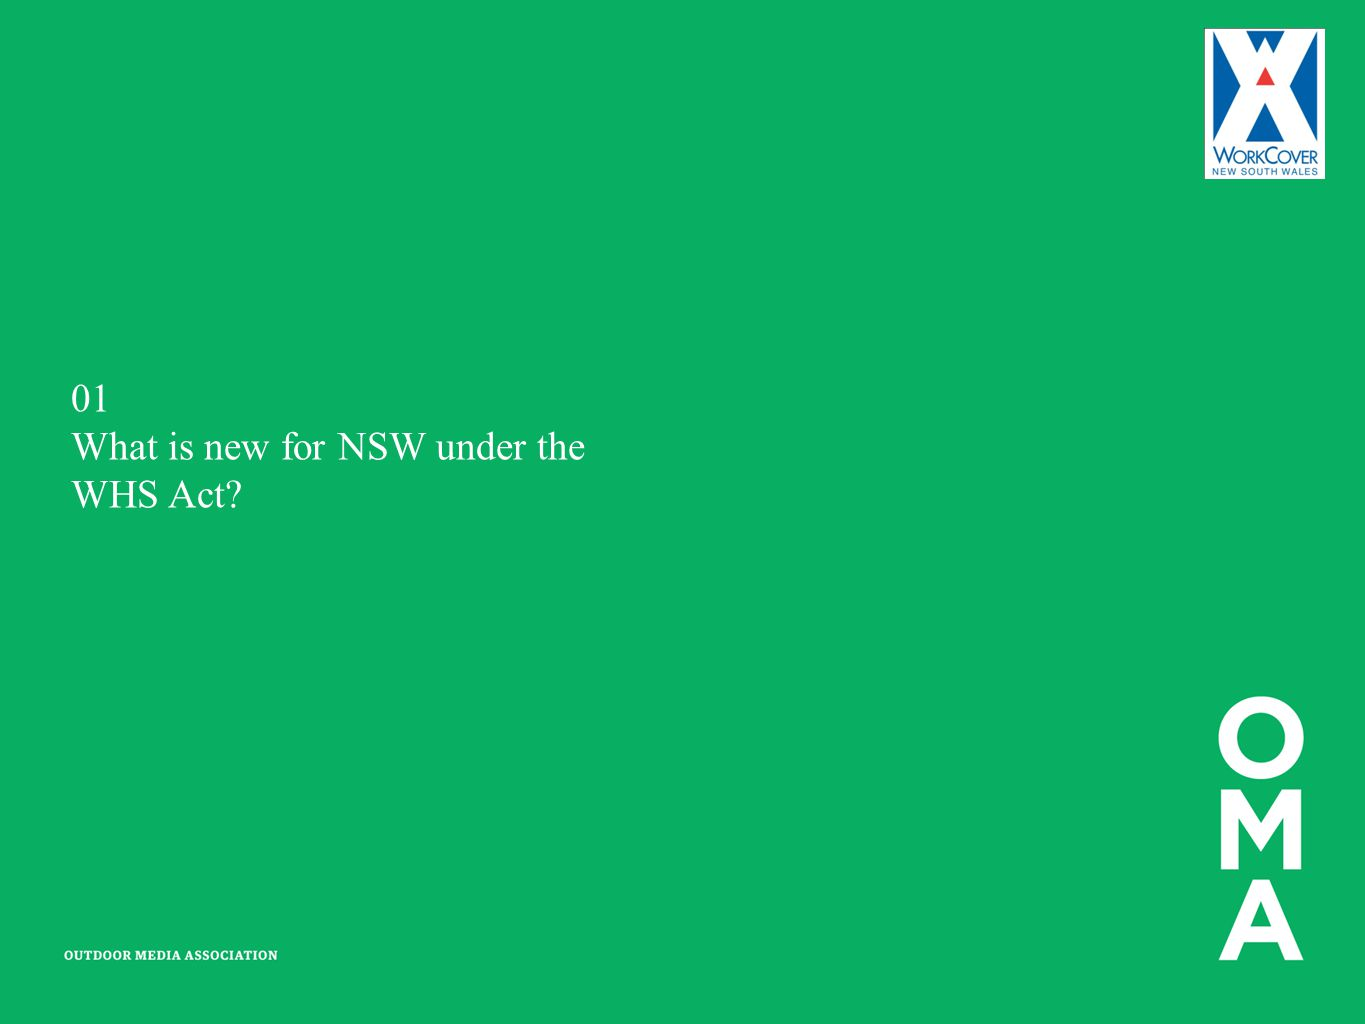 01 What is new for NSW under the WHS Act?